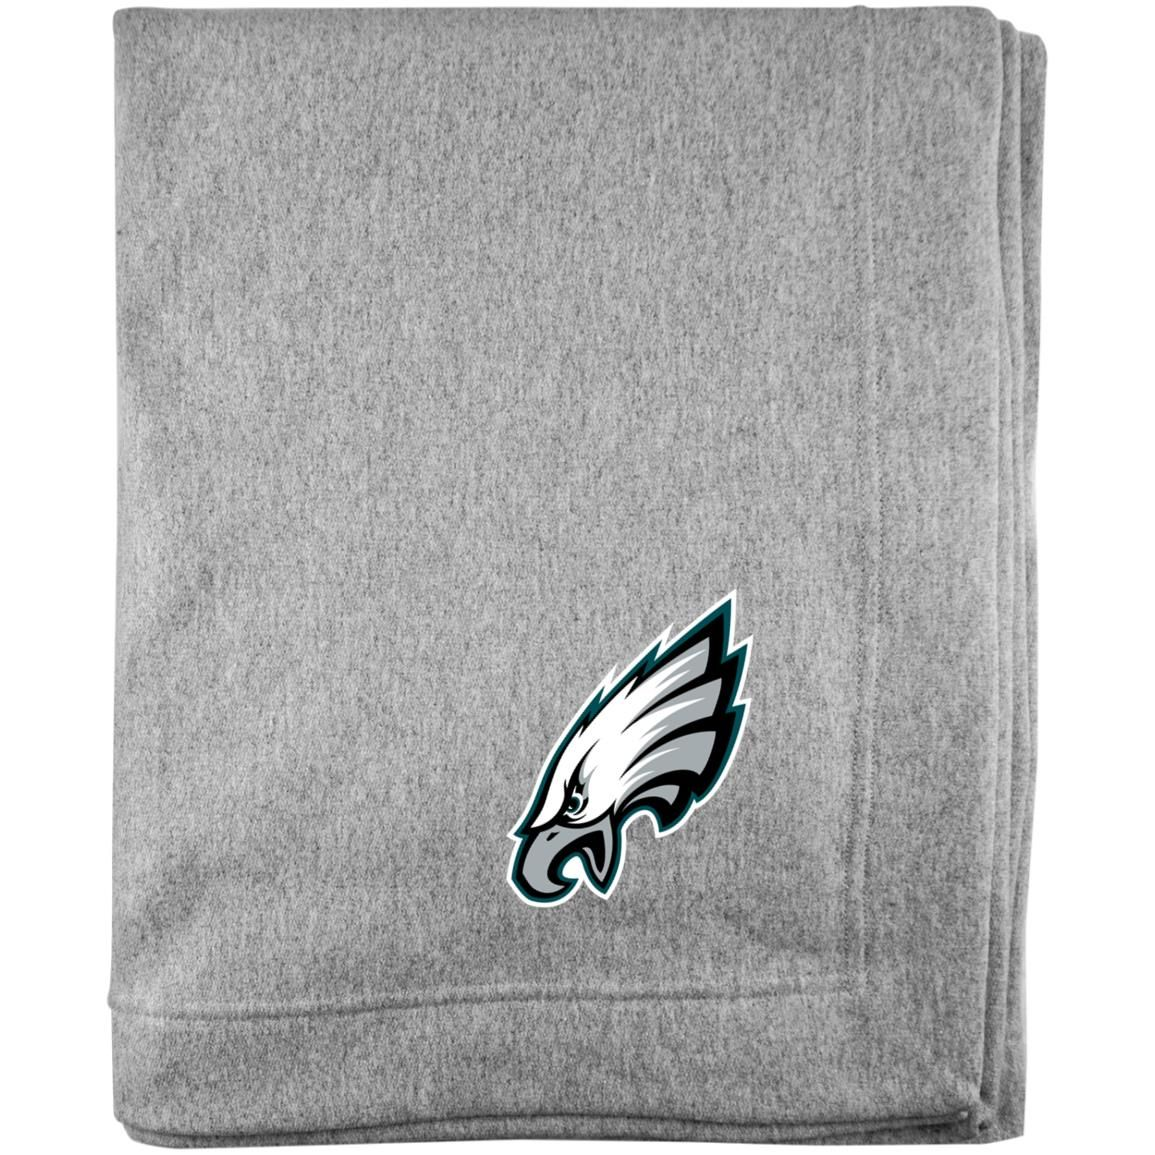 32f8bb026 Philadelphia Eagles NFL Sweatshirt Blanket | NFL Merchandise in 2019 ...